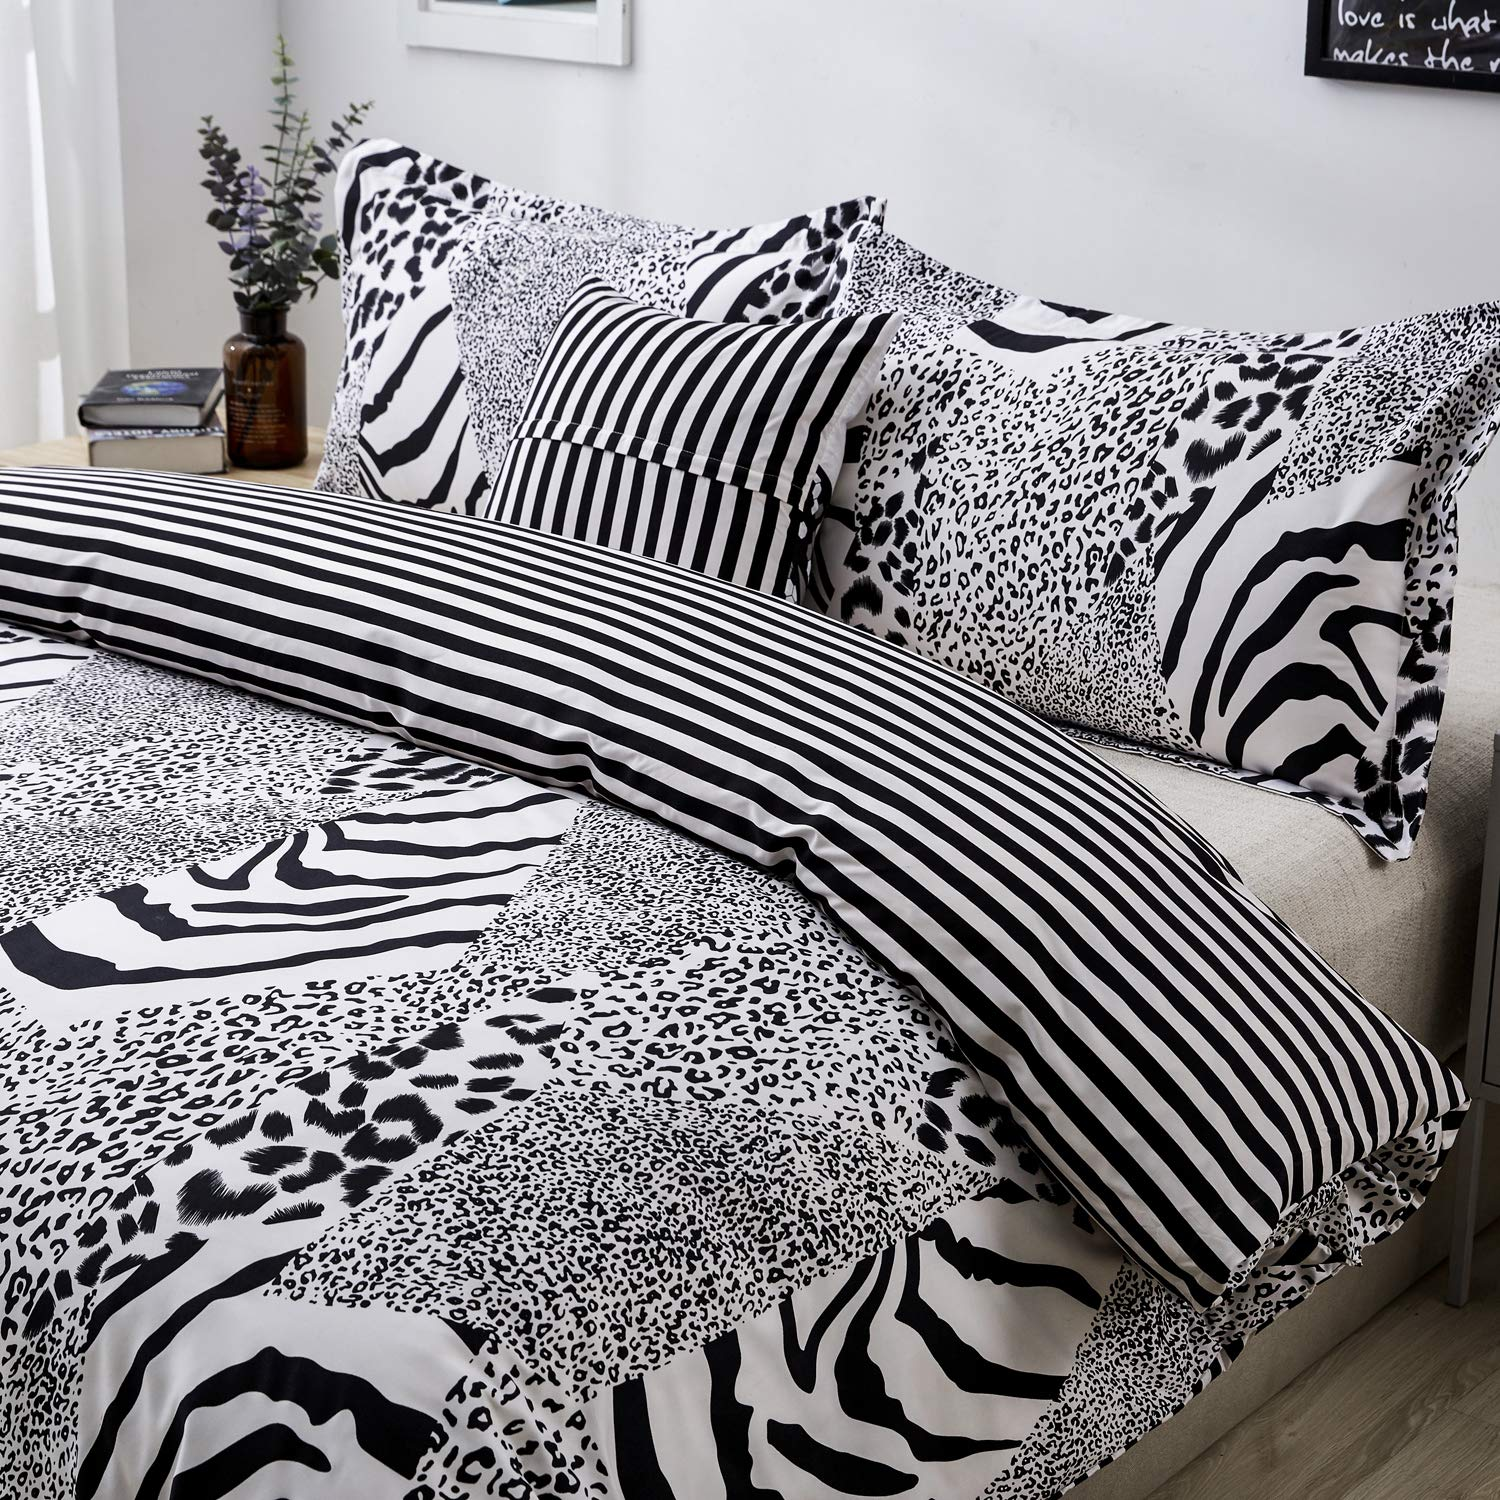 Black and White Bedding Leopard Print Duvet Cover Set Queen Zebra Giraffe Leopard Tiger Stripes Print Bedding Safari Animal Print Bedding with 2 Pillow Shams